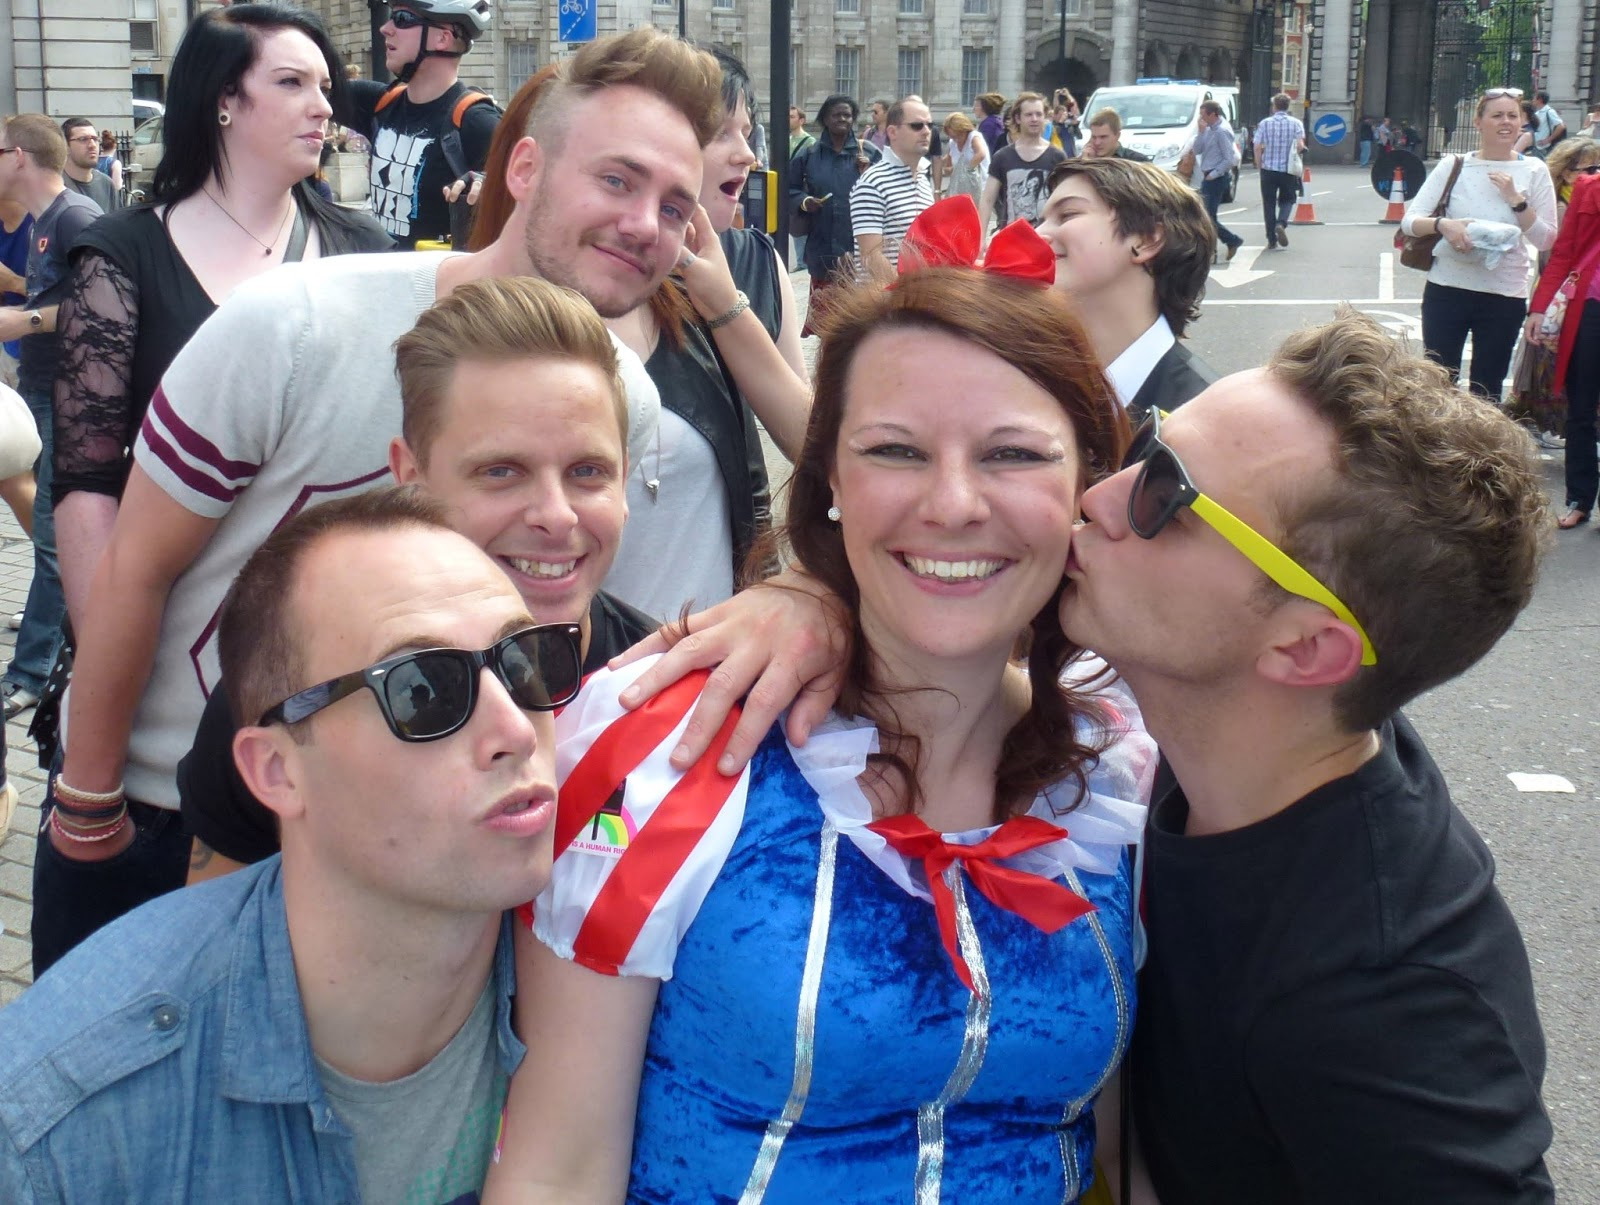 trafalgar gay dating site Gay and lesbian london clubs, bars, events, listings and information your complete guide to lgbt life in london.